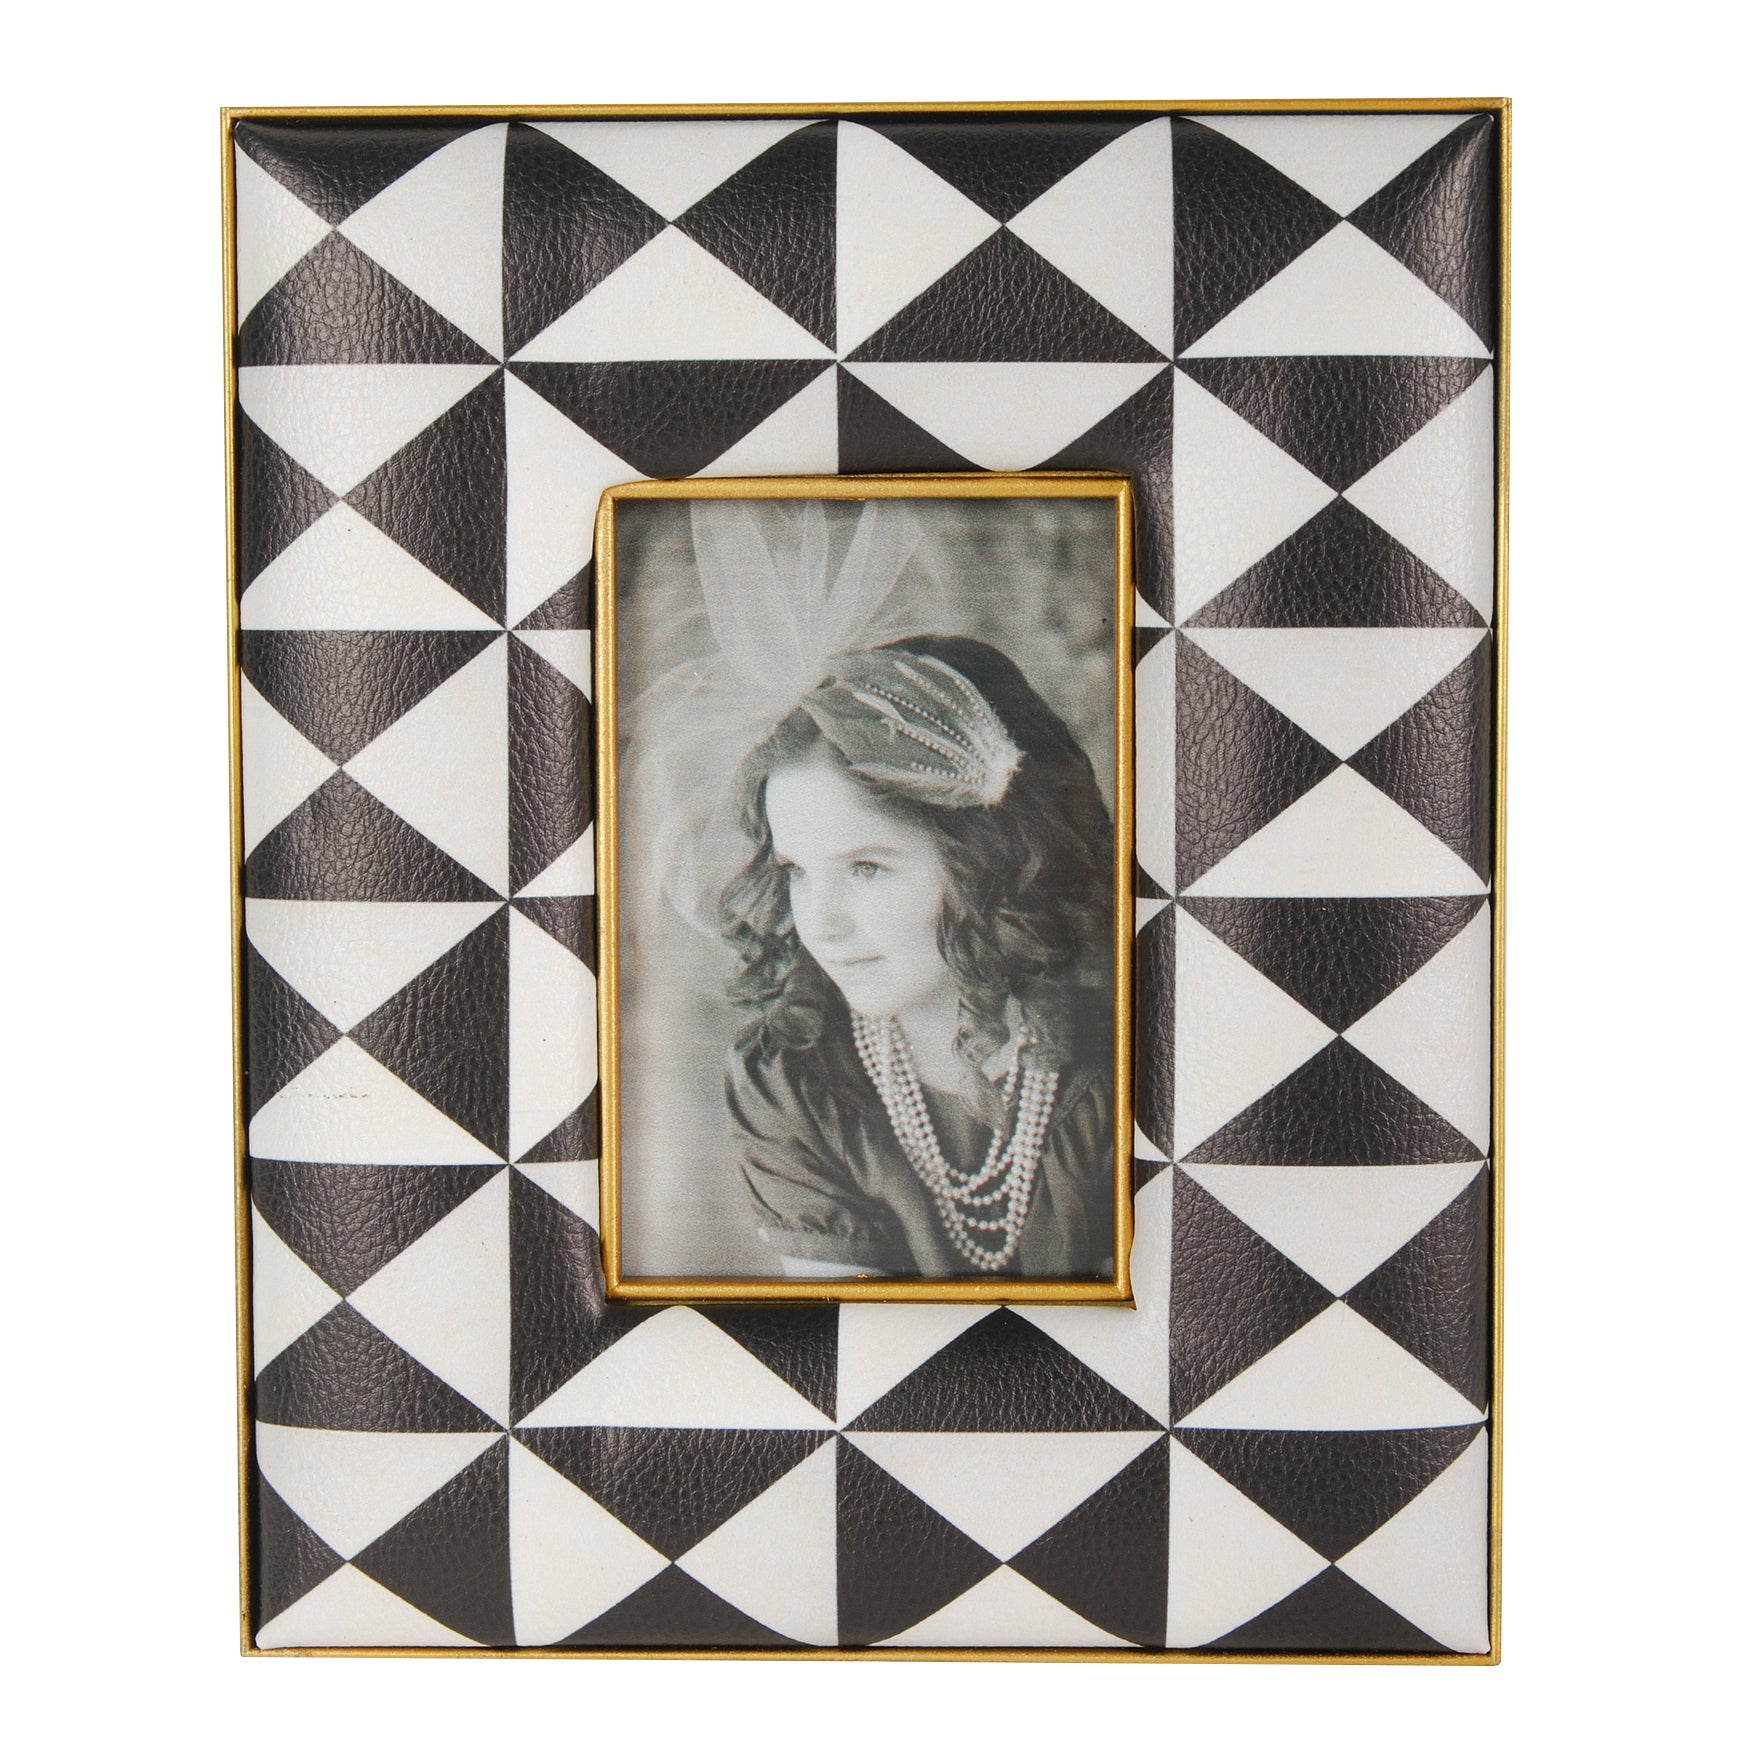 AB-AV37929 Geometric Printed Frames, Small - Picket&Rail